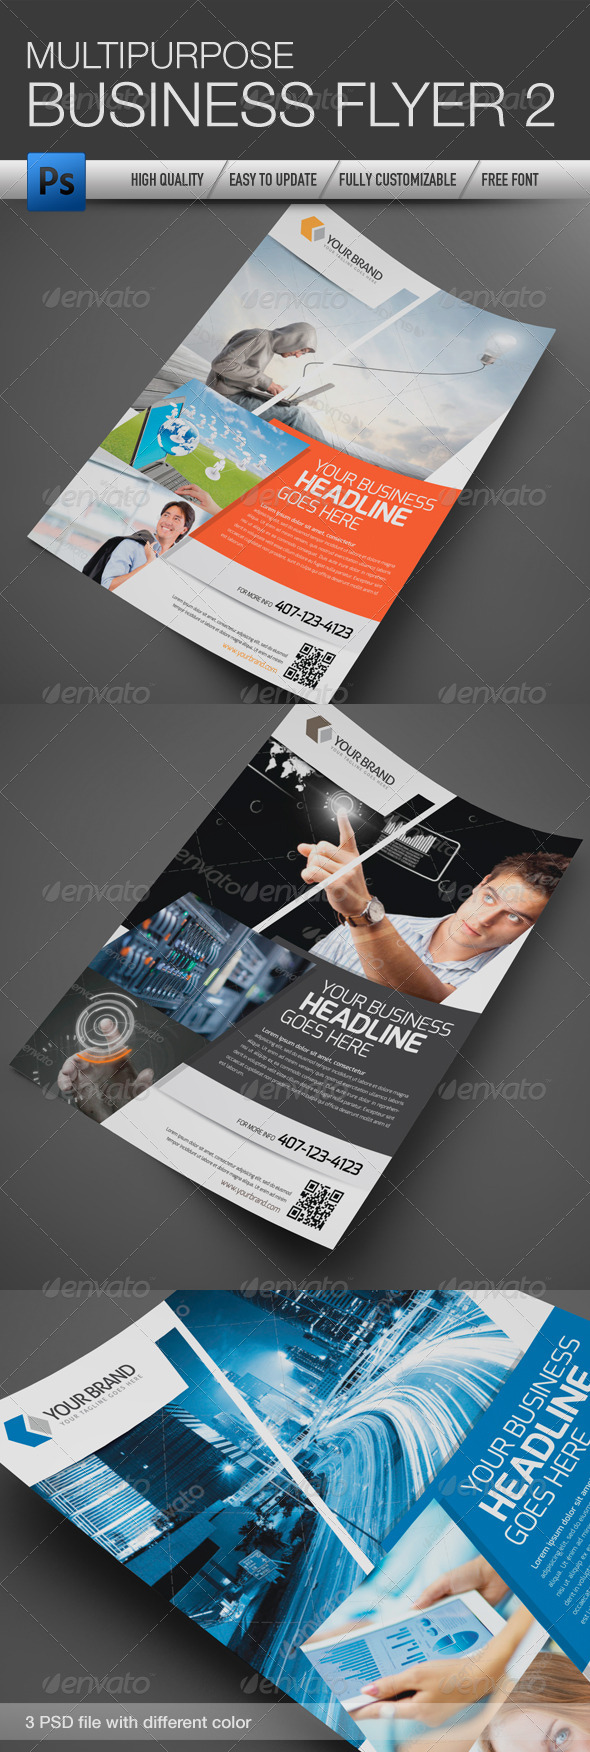 GraphicRiver Multipurpose Business Flyer 2 4615414